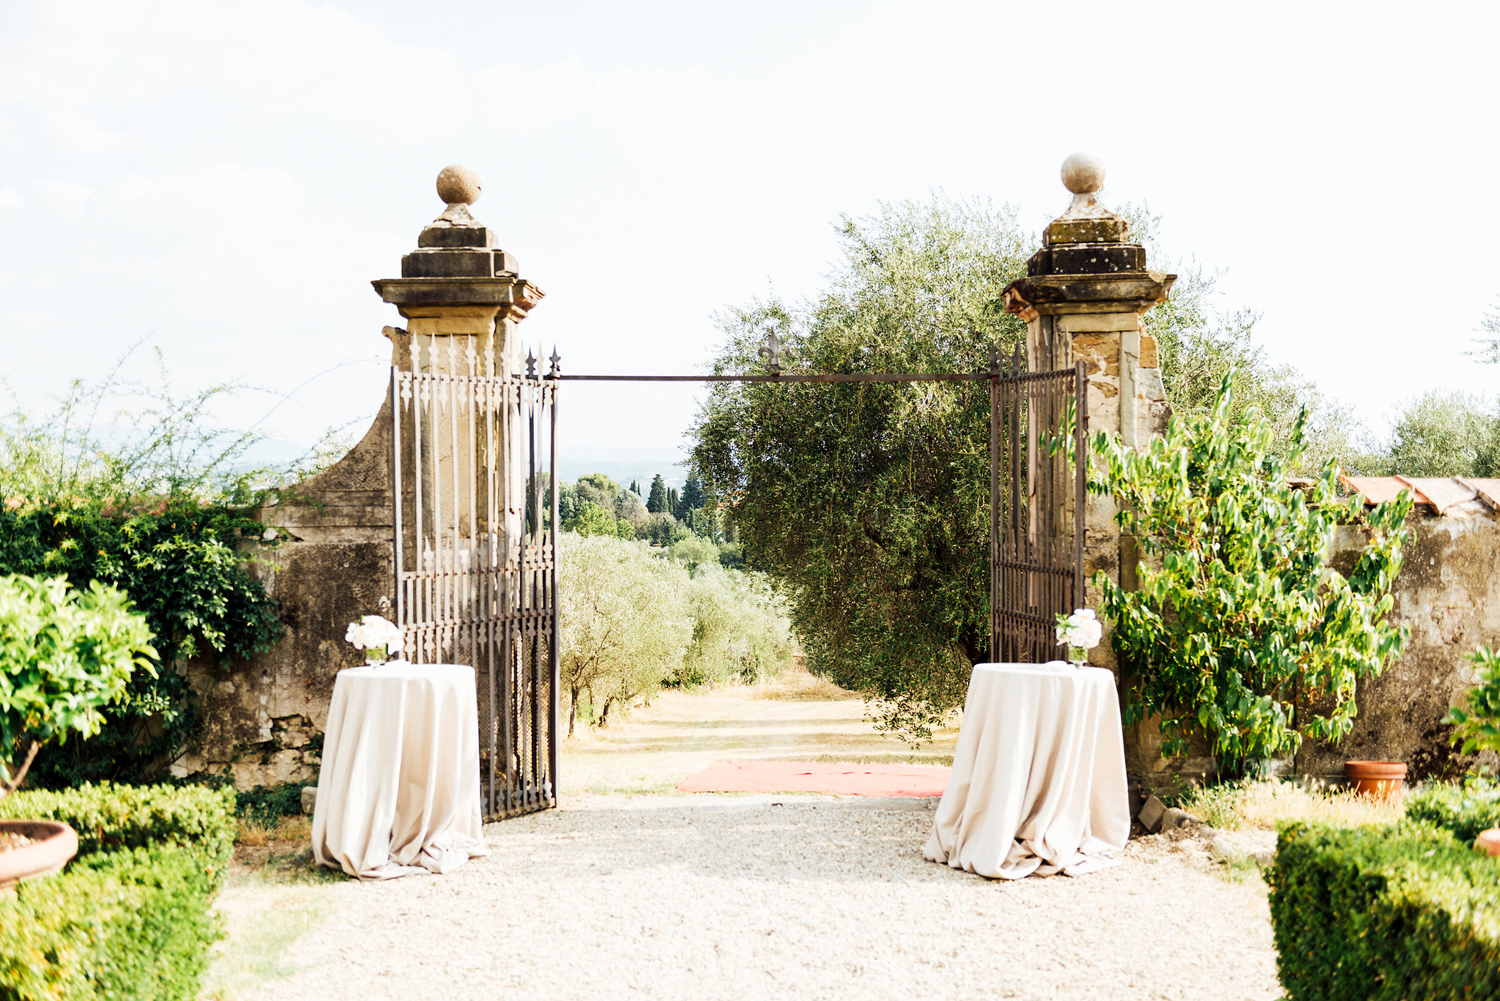 katie_mitchell_wedding_florence_tuscany_villa_di_miano_wedding_photography_38.jpg